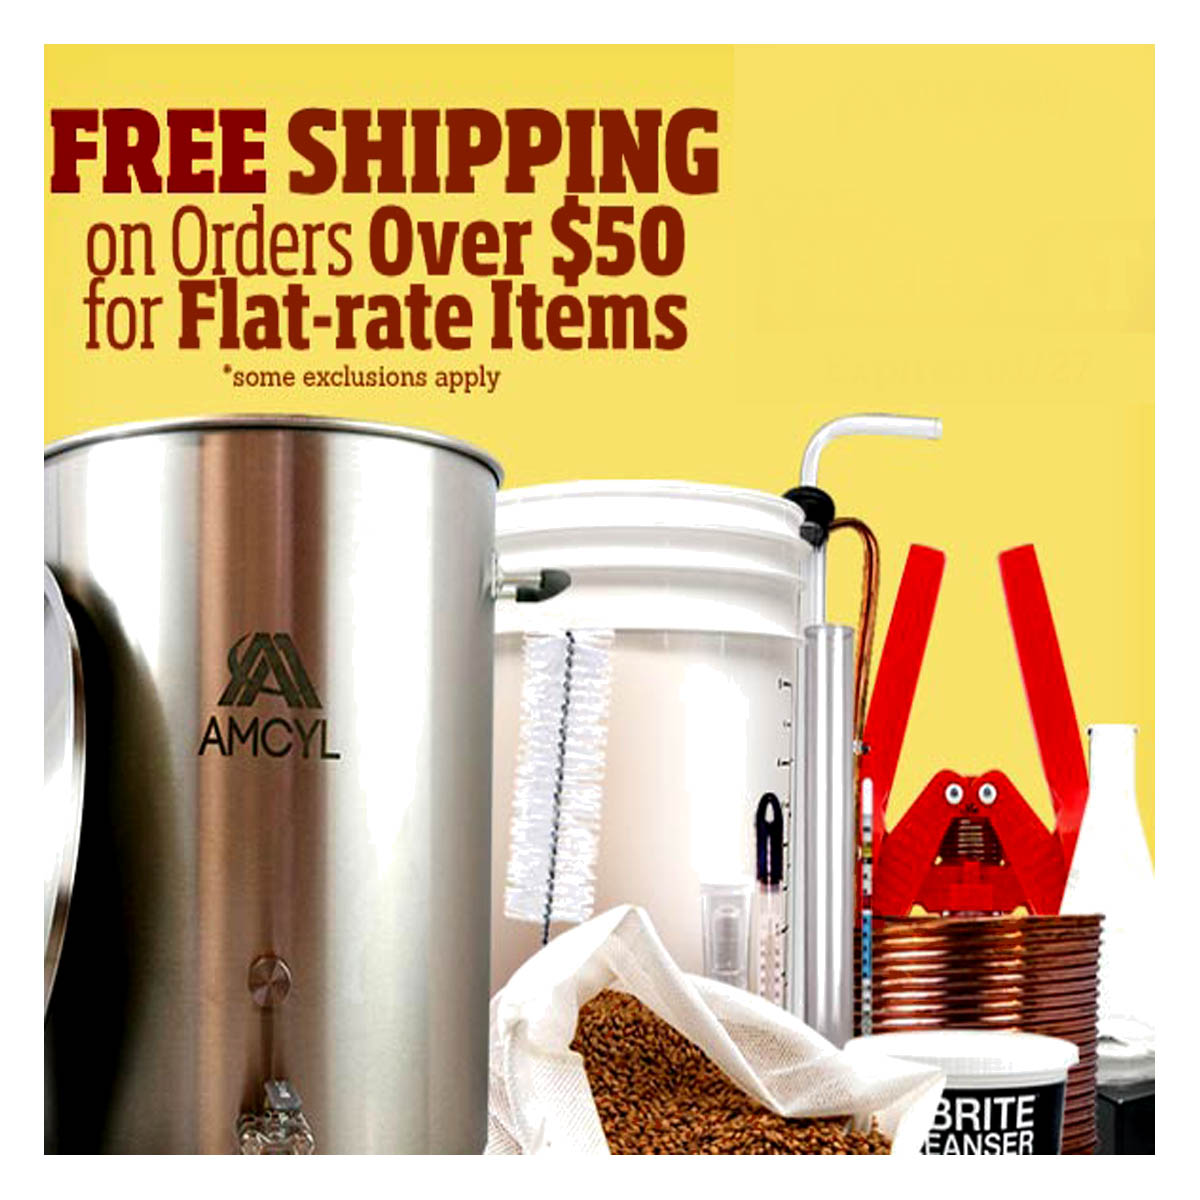 Home Wine Making Coupon Codes for Free Shipping Promo Code for HomebrewSupply.com Coupon Code